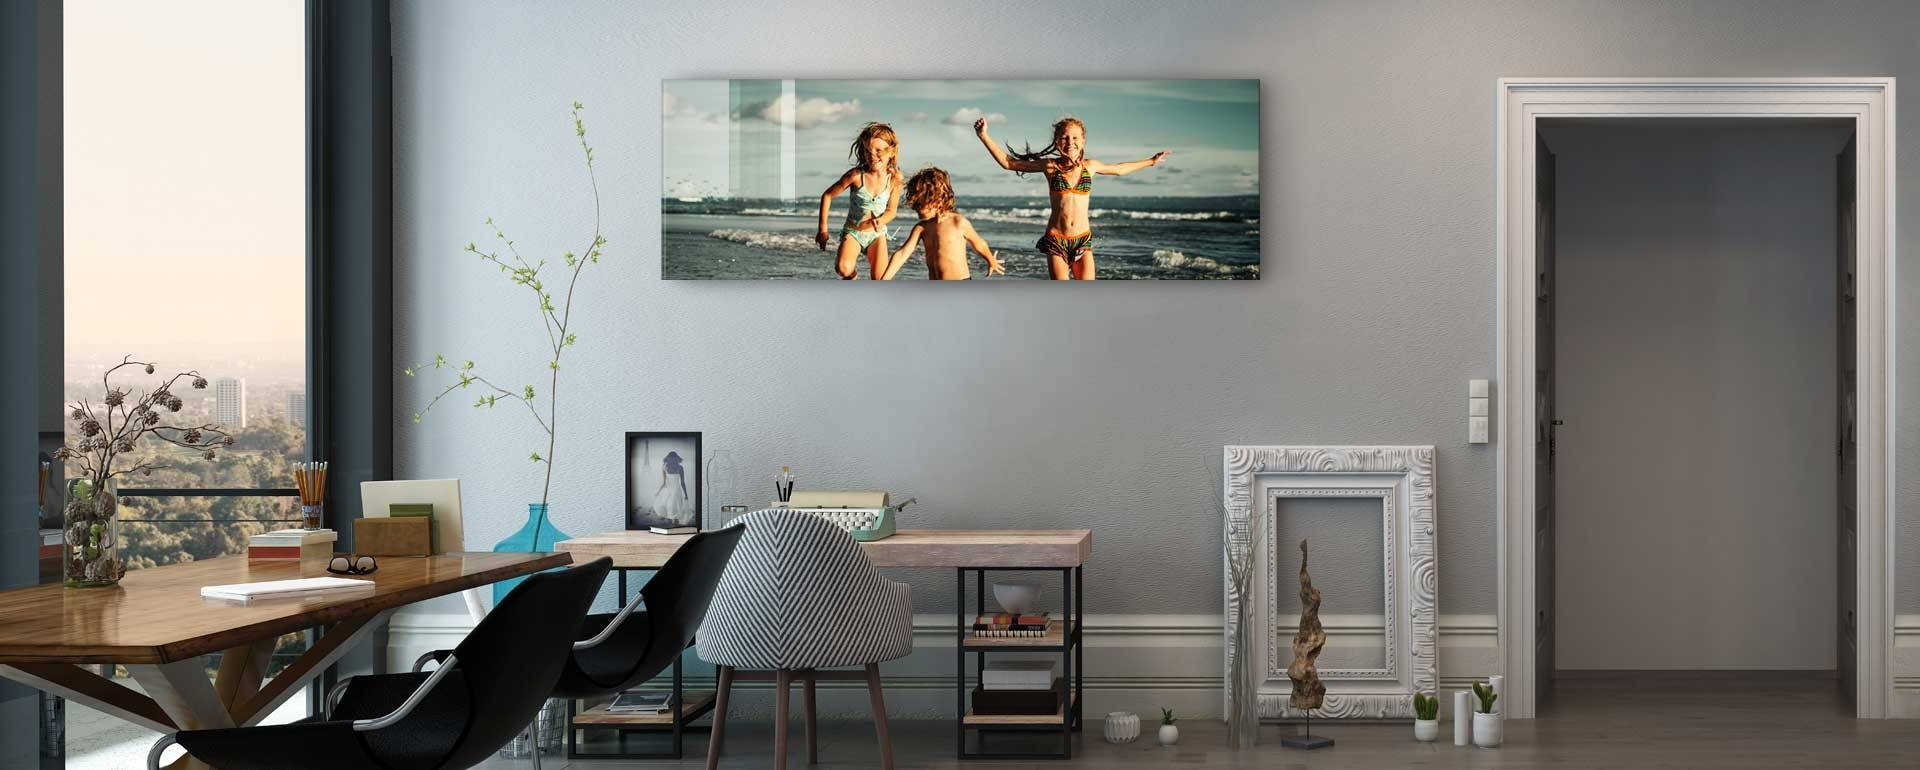 Online Digital Glass Screen Large Photo Printing | Picture Prints With Most Current Glass Wall Artworks (View 14 of 15)